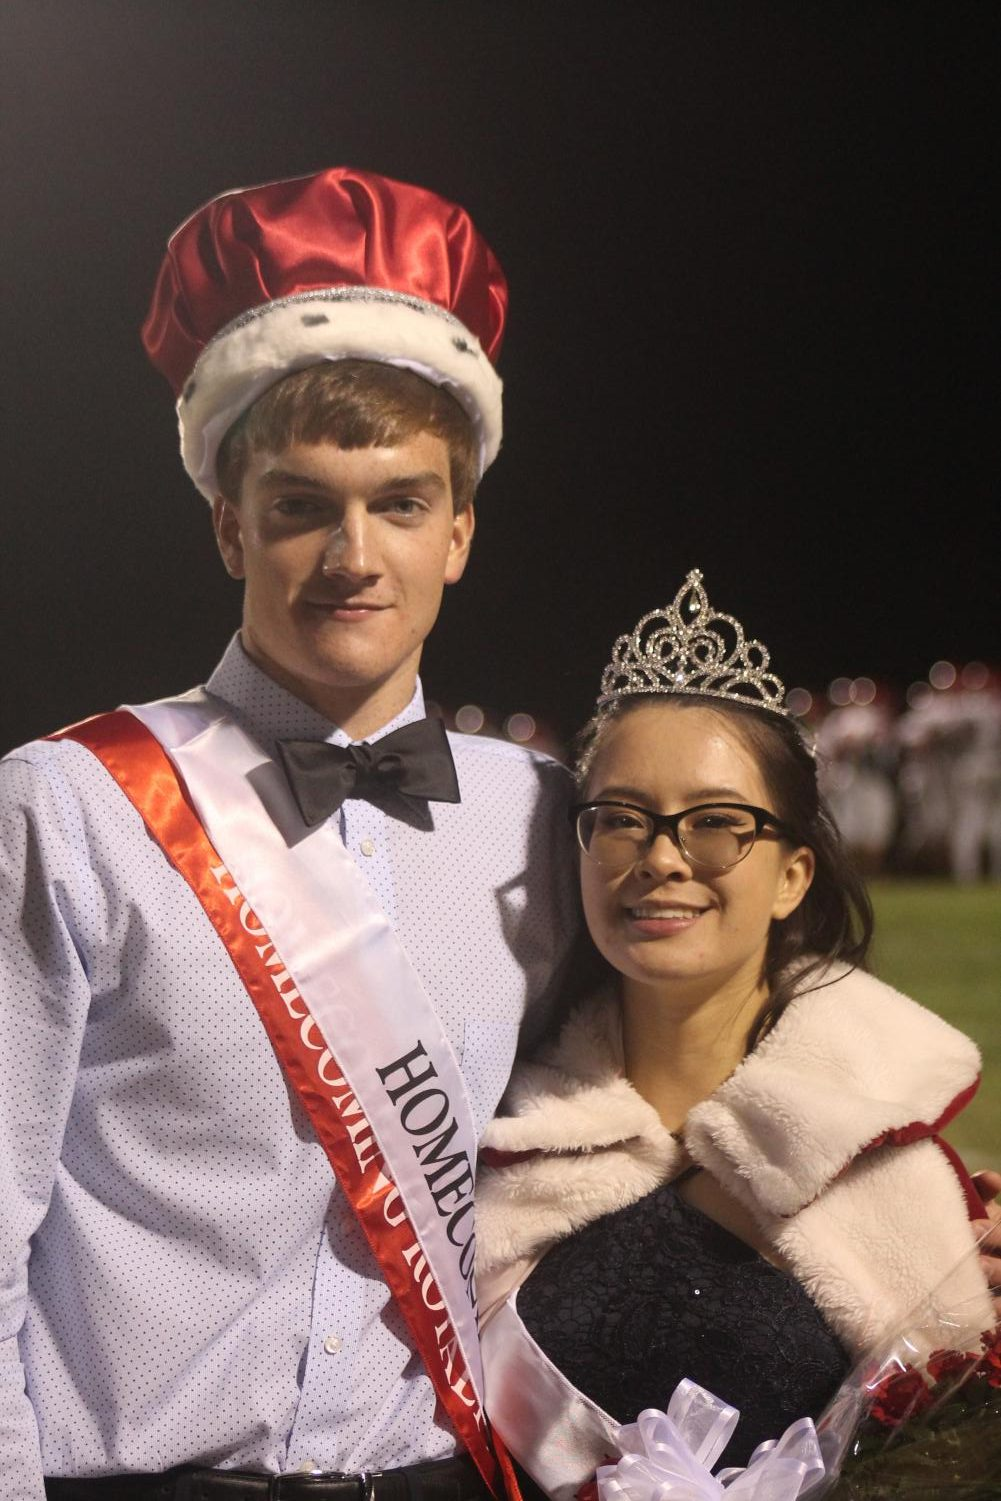 MCHS+Fall+2019+Homecoming+King+Matt+Ward+and+Queen+Lyca+Bishop